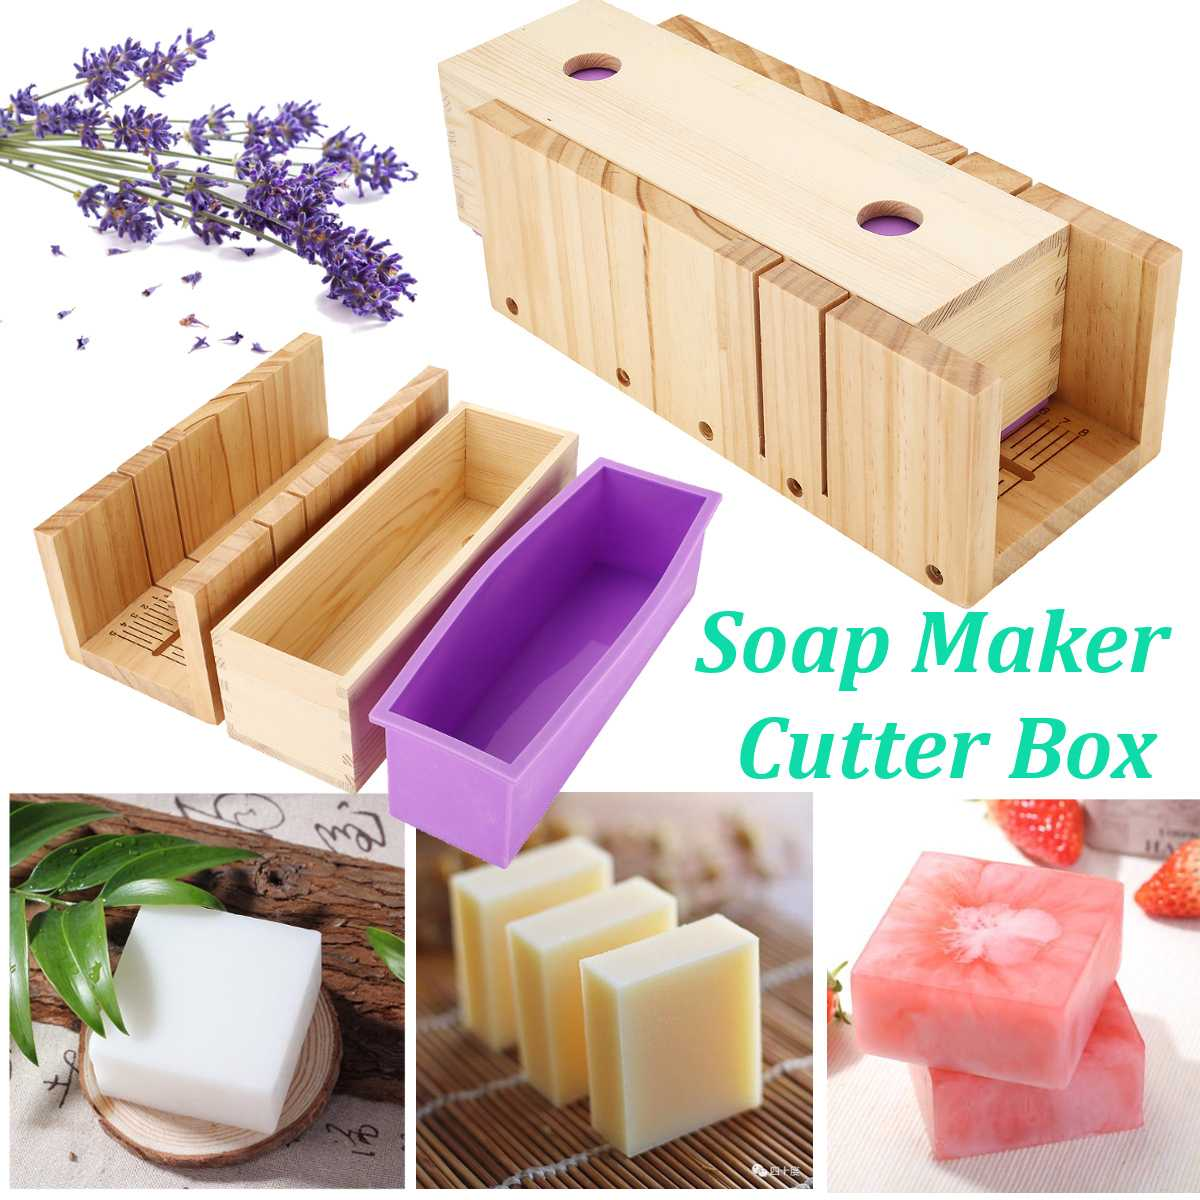 Soap Cutting Tools Set Adjustable Wood Loaf Cutter Box DIY Handmade Soap Making Supplies With Scale And Slotting Soap Cutter